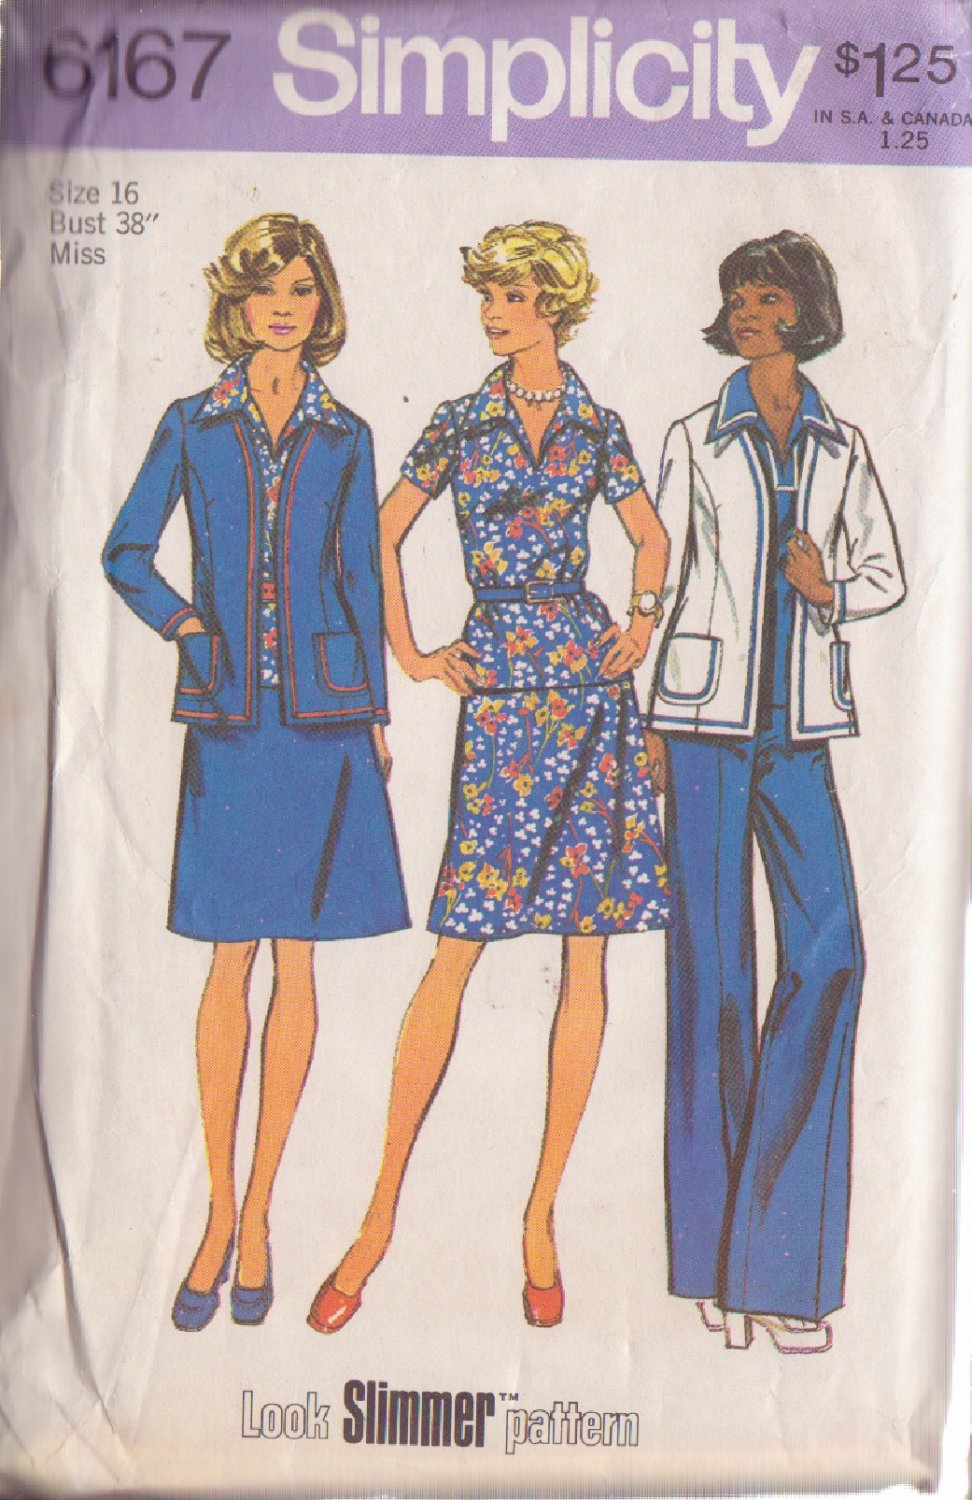 SIMPLICITY VINTAGE 1972 PATTERN 6167 SIZE 16 MISSES JACKET TOP SKIRT PANTS